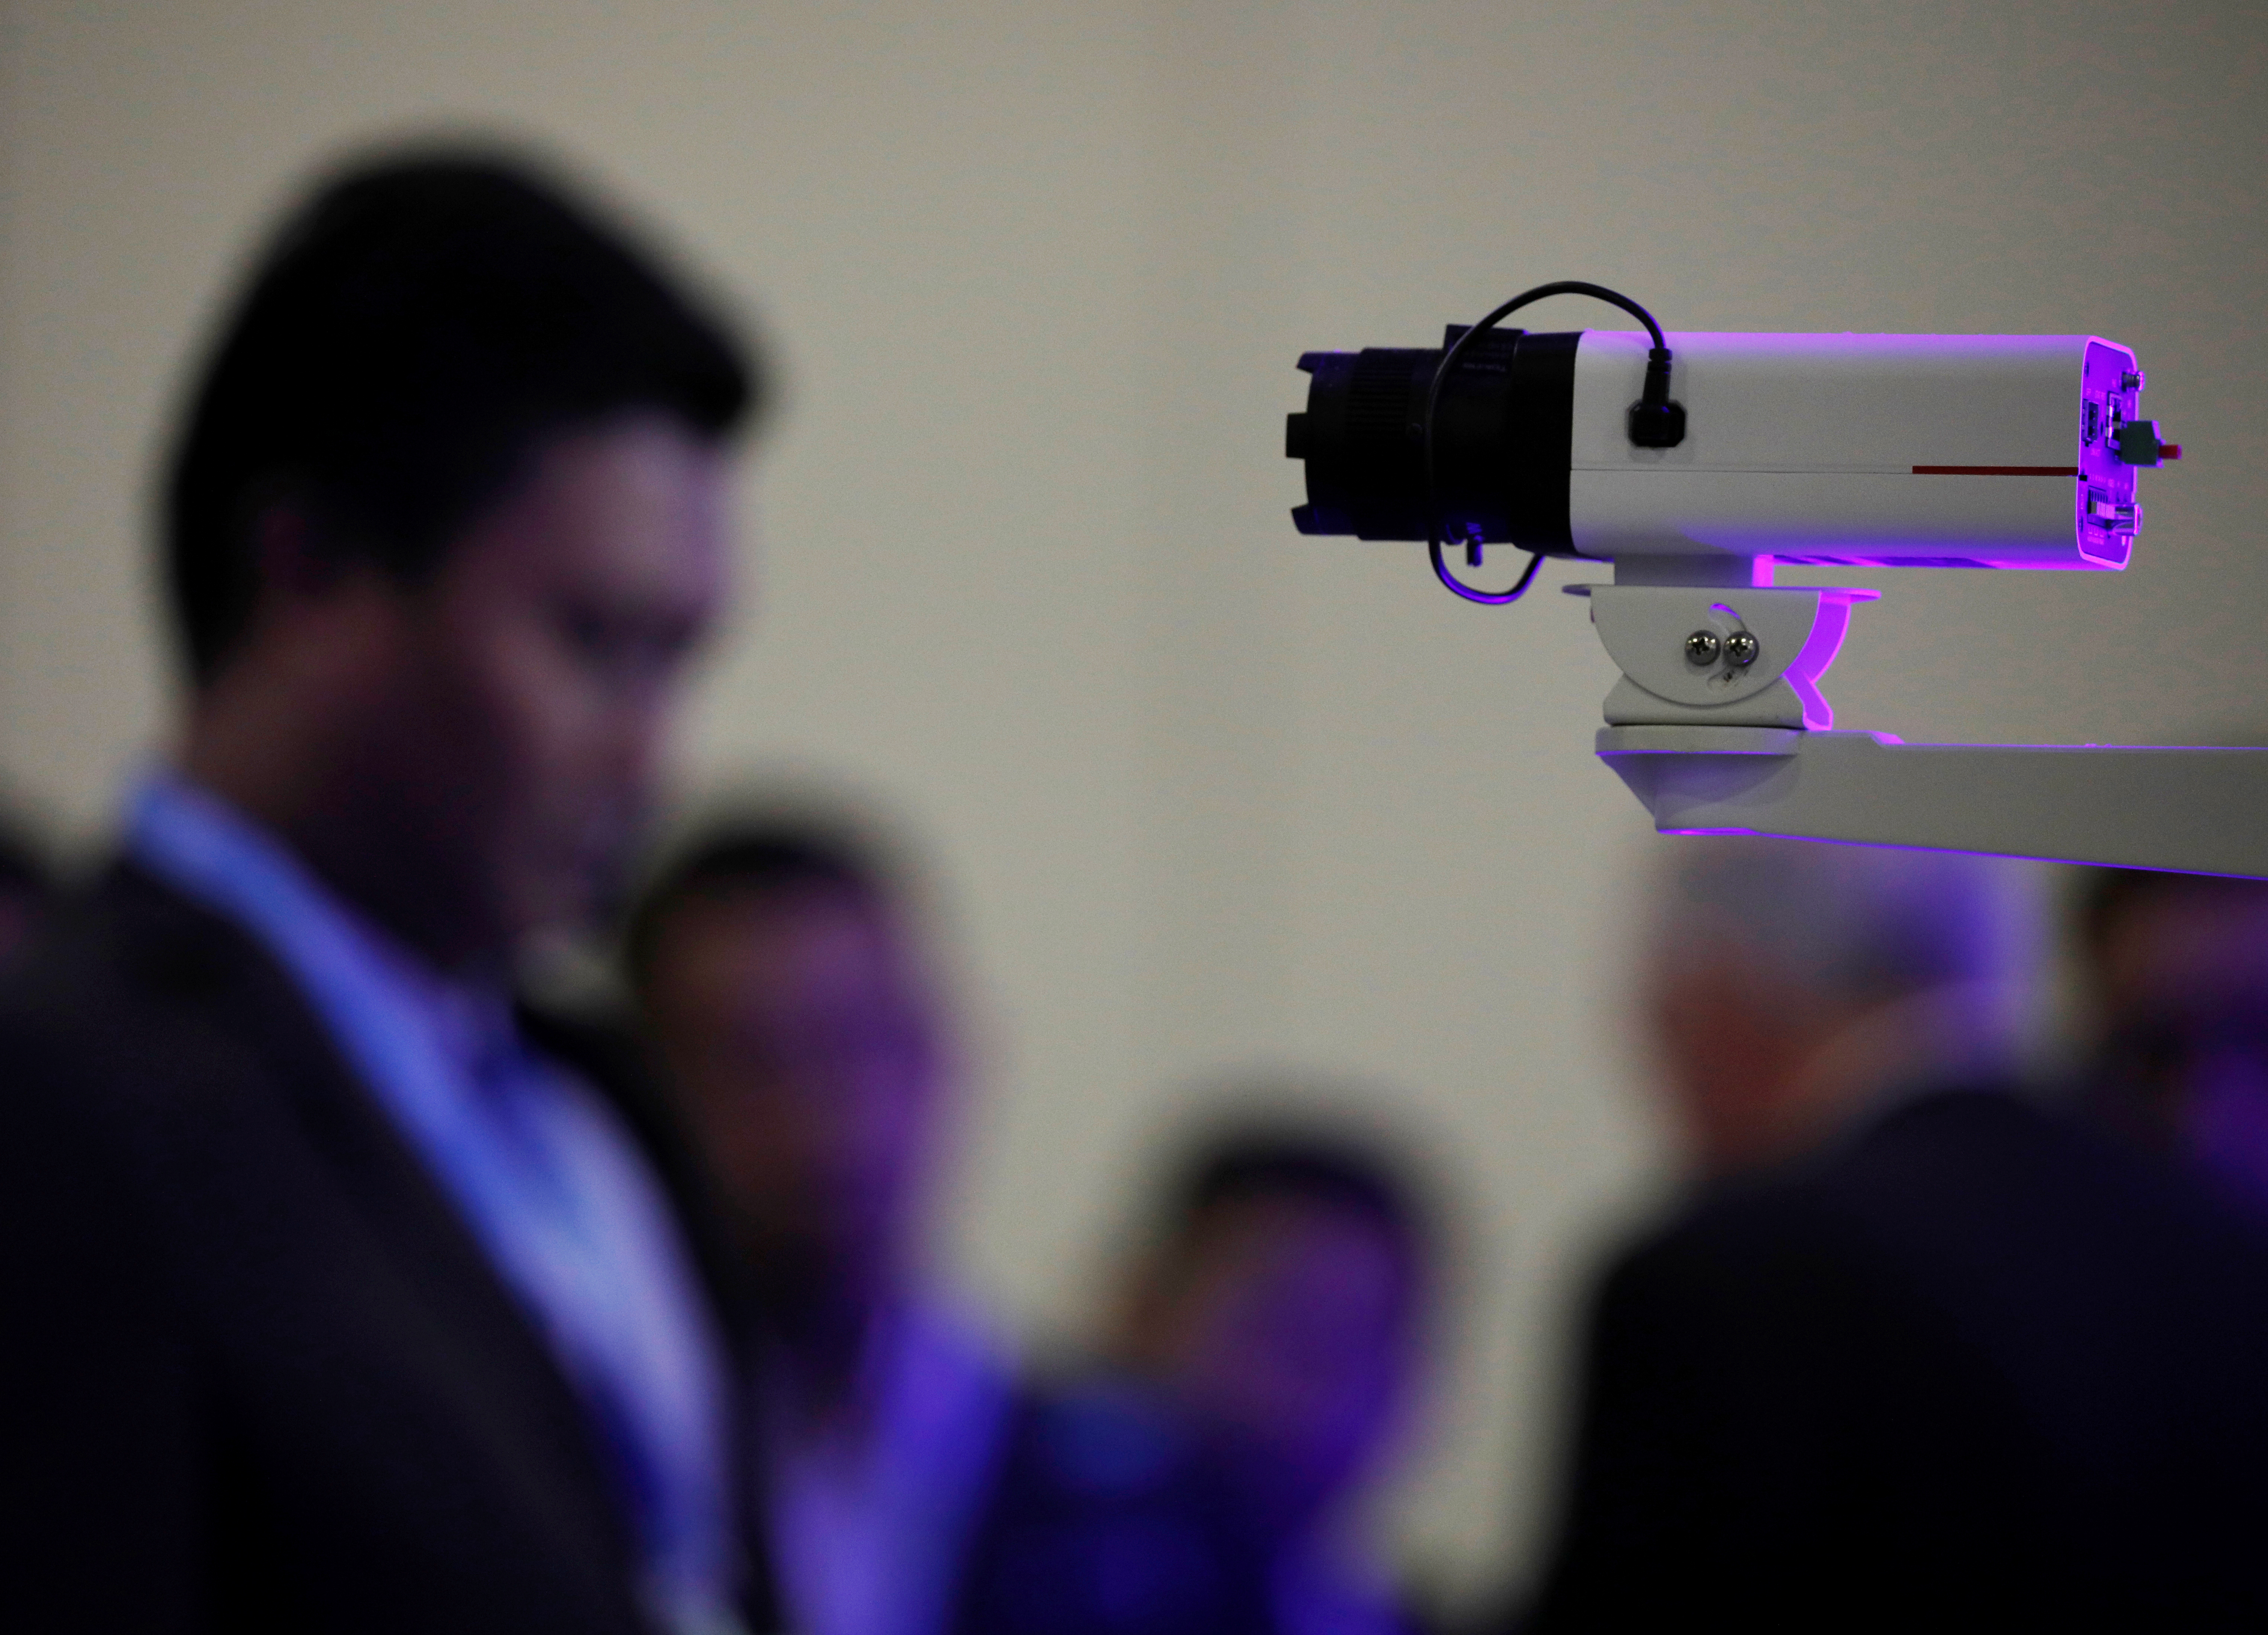 Brookings - How Employers Use Technology To Surveil Employees